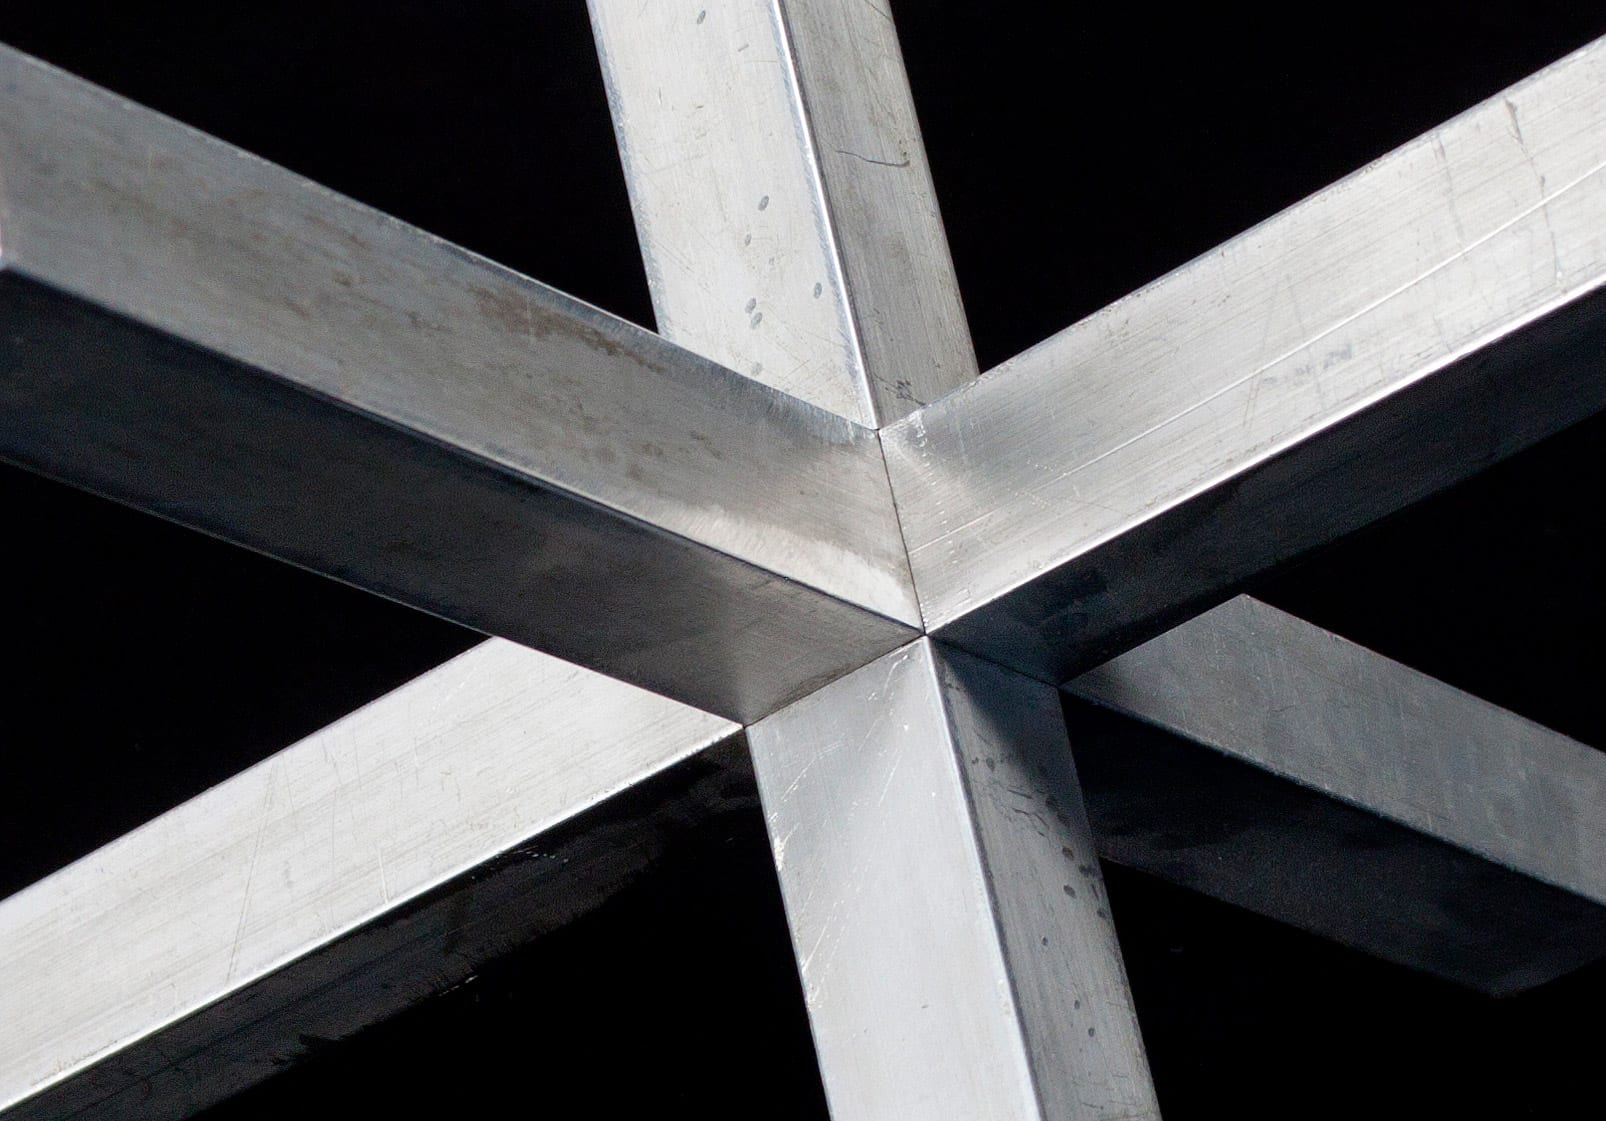 Detail of the aluminum joint prior to painting during the art fabrication process.